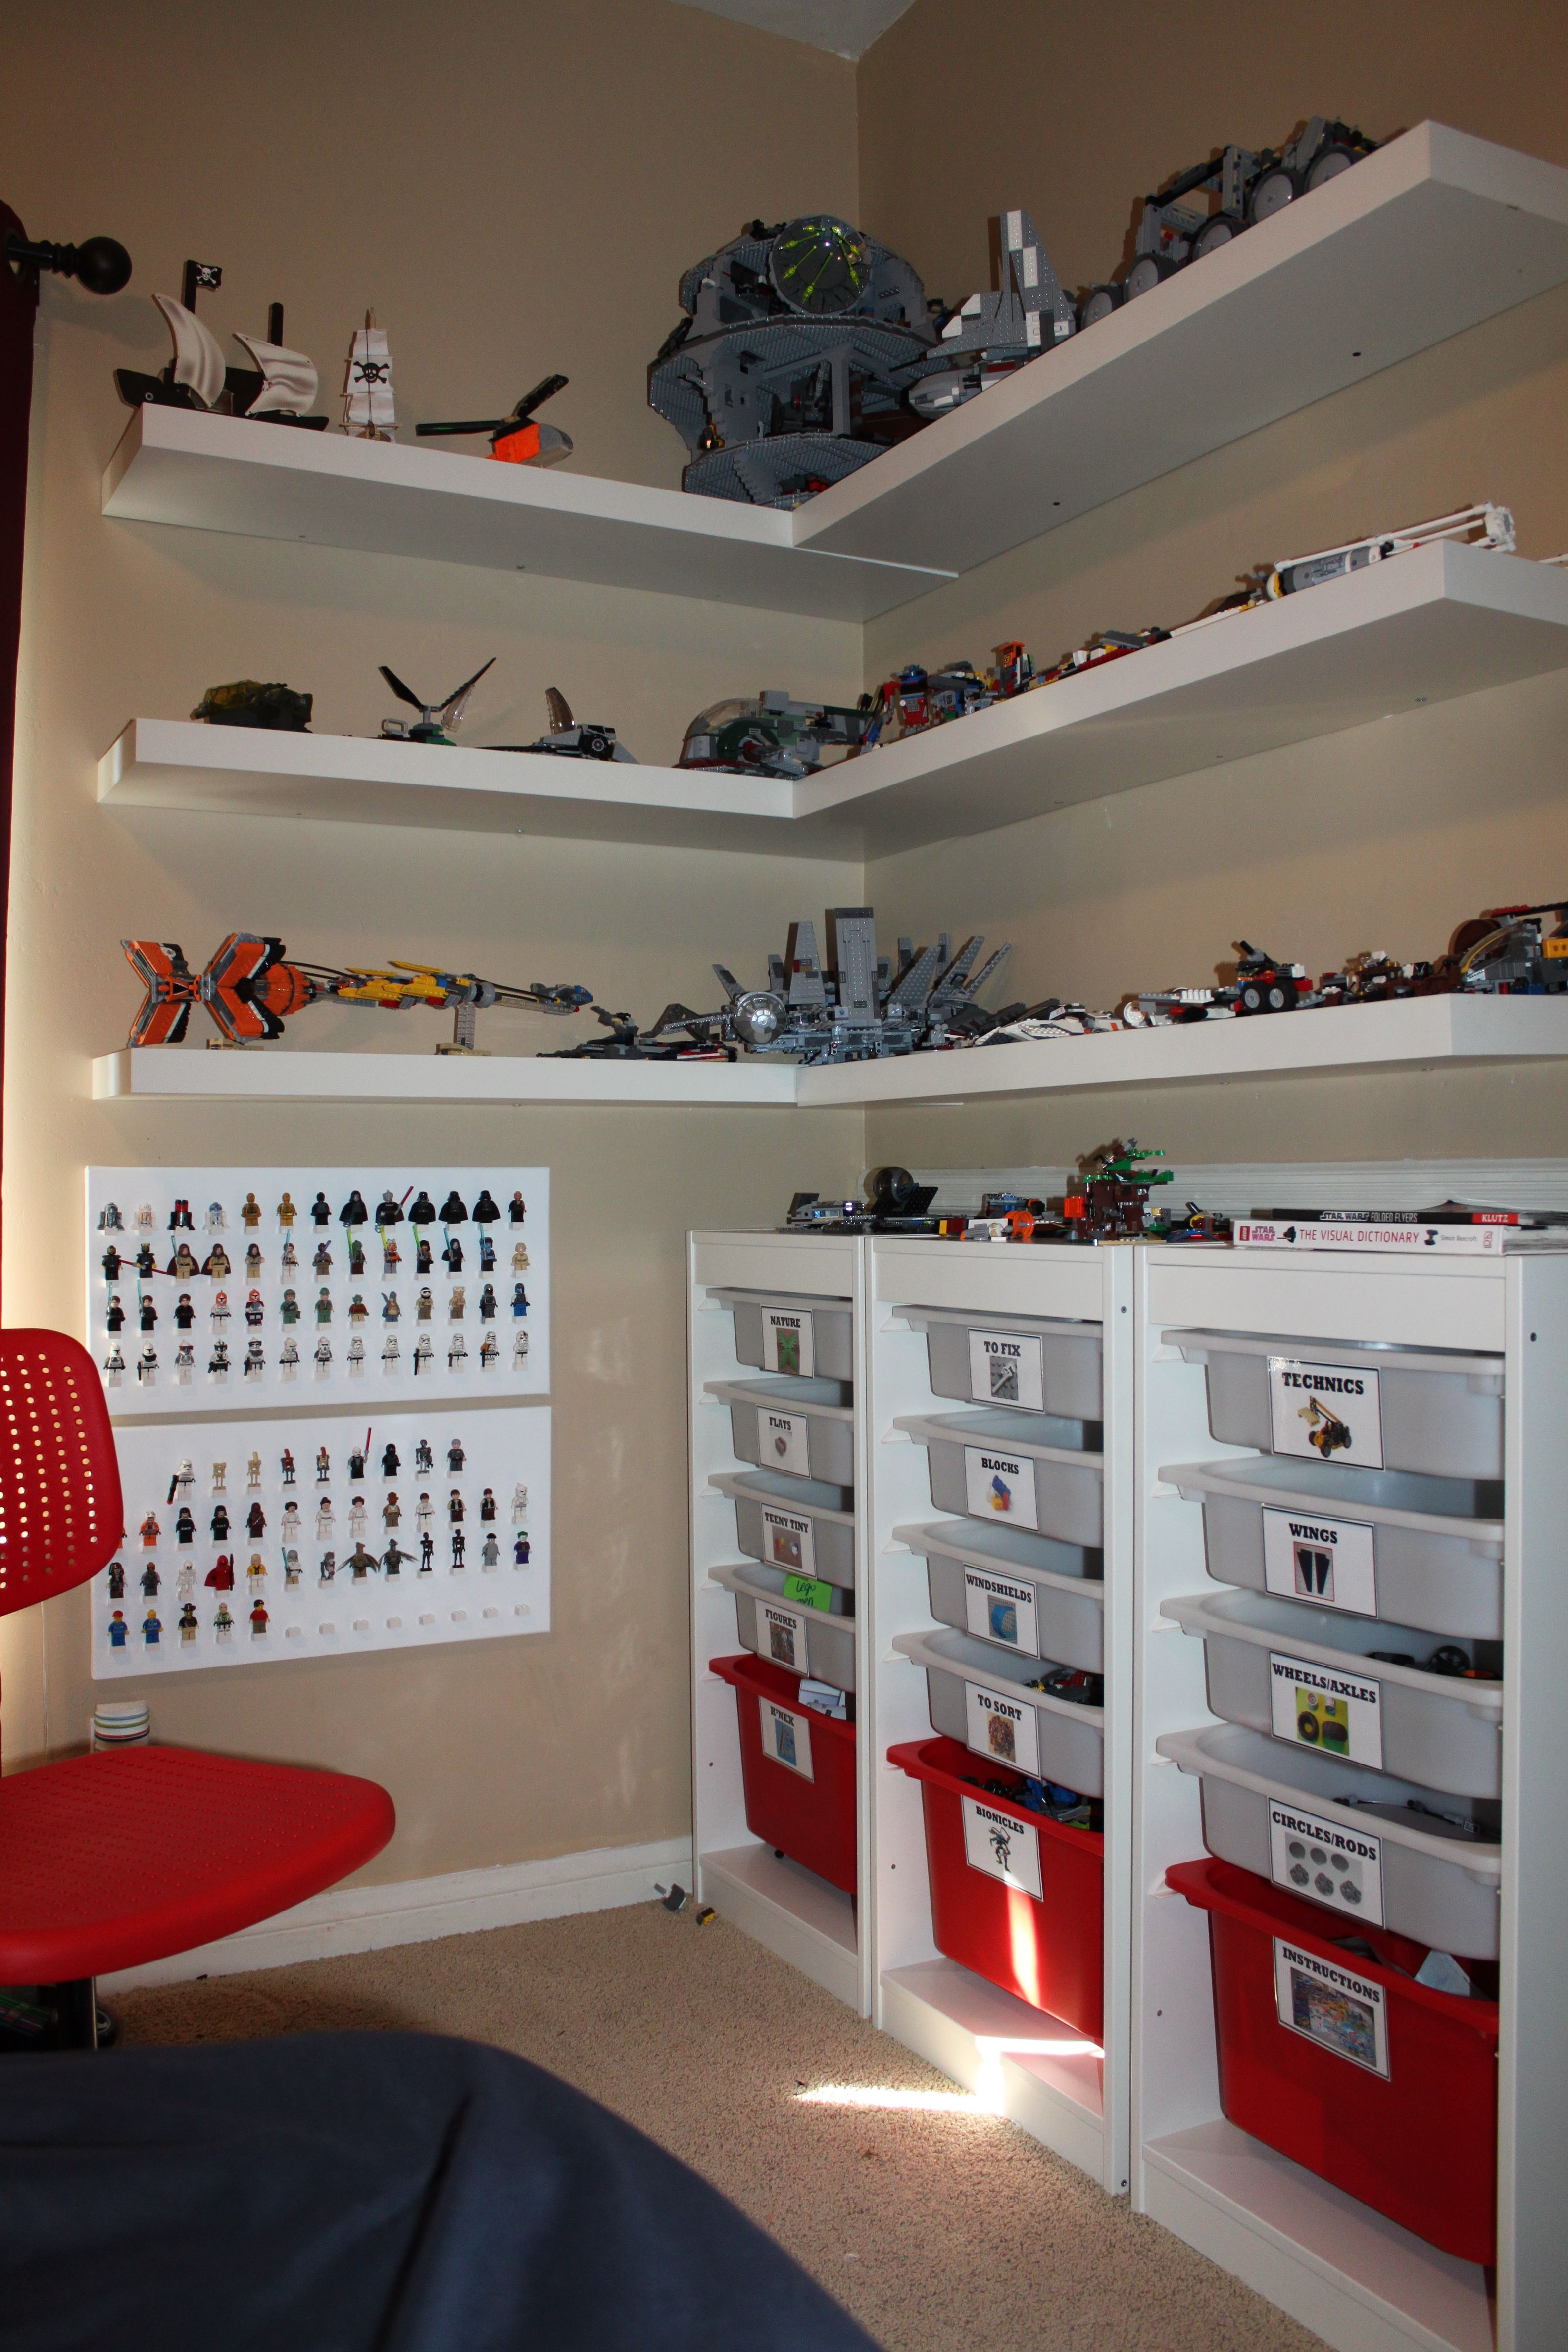 Knopf Teppich Ikea Clay S Lego Corner Creation Station Made Using Ikea Shelves And